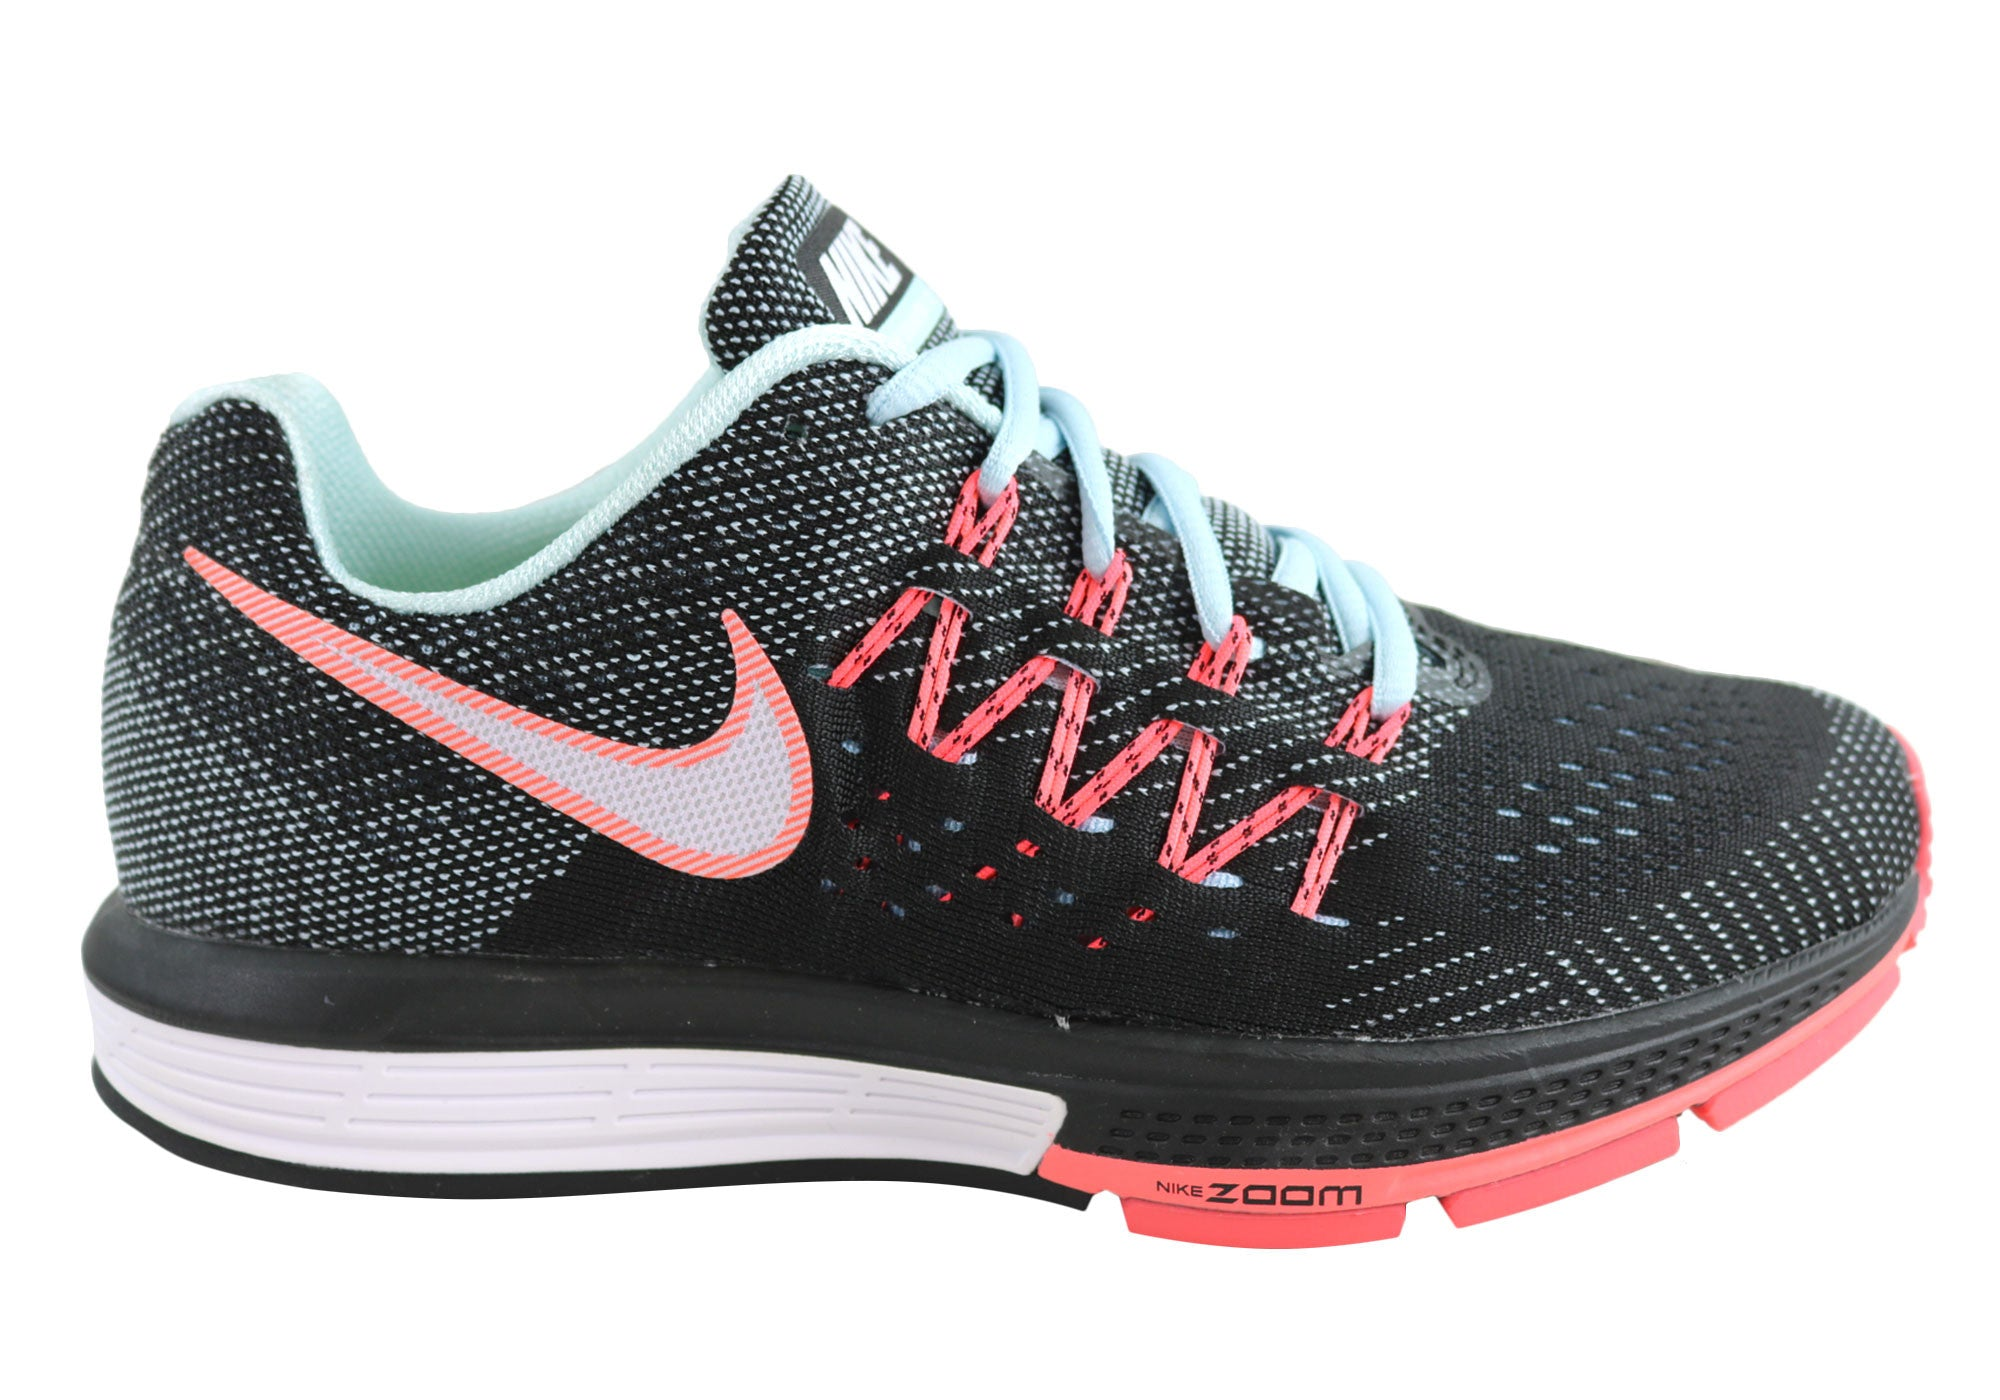 Nike Womens Air Zoom Vomero 10 (Wide Fitting) Comfortable Sport ... 6a1fc83d7